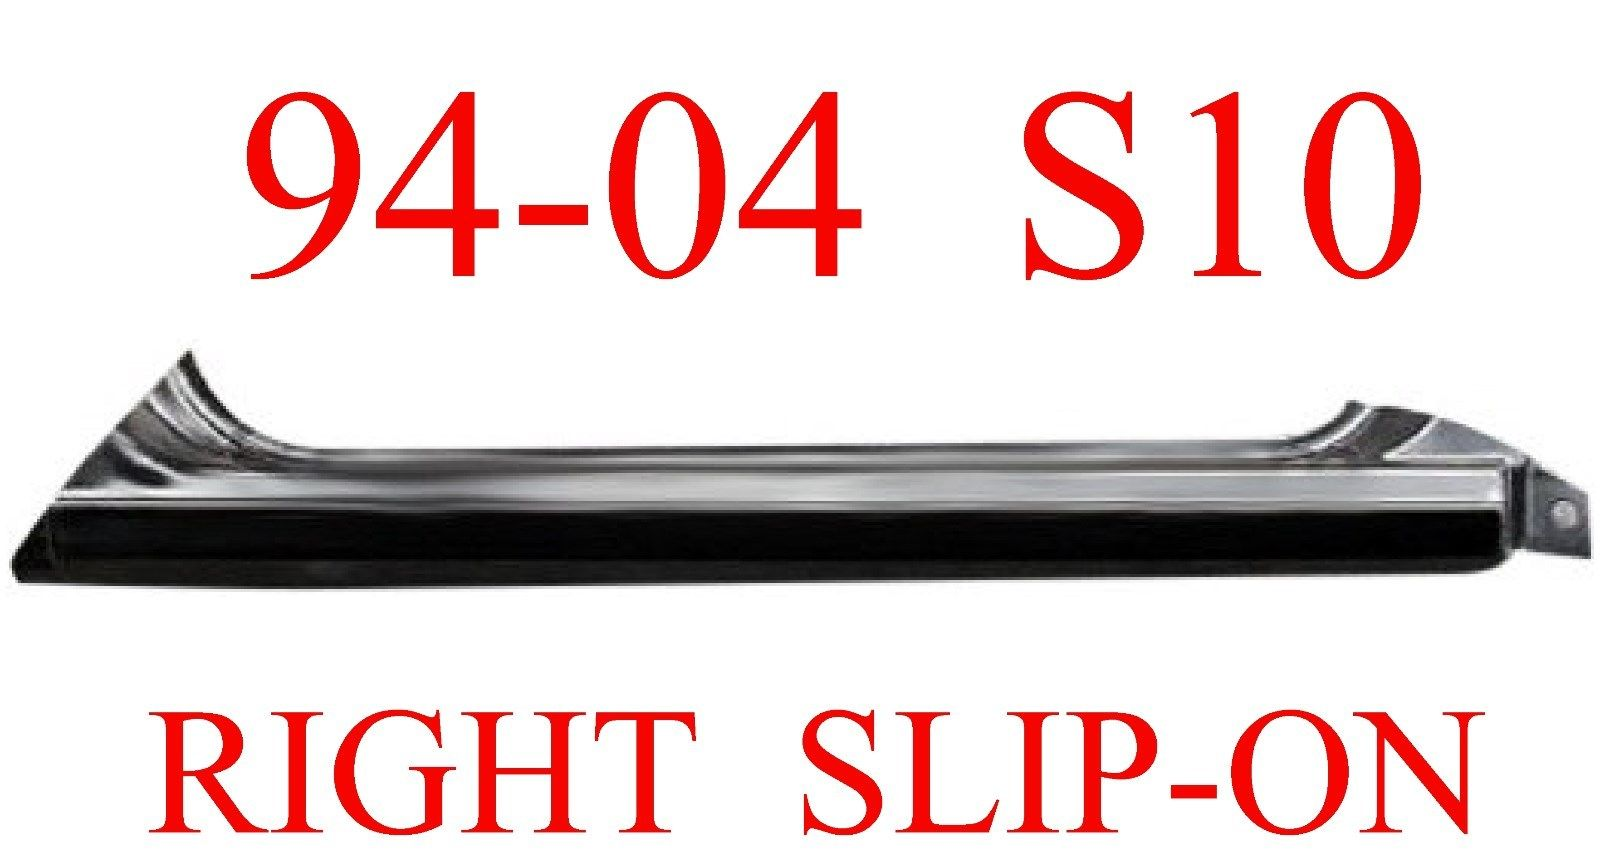 94-04 Chevy S10 Right Slip-On Rocker Panel